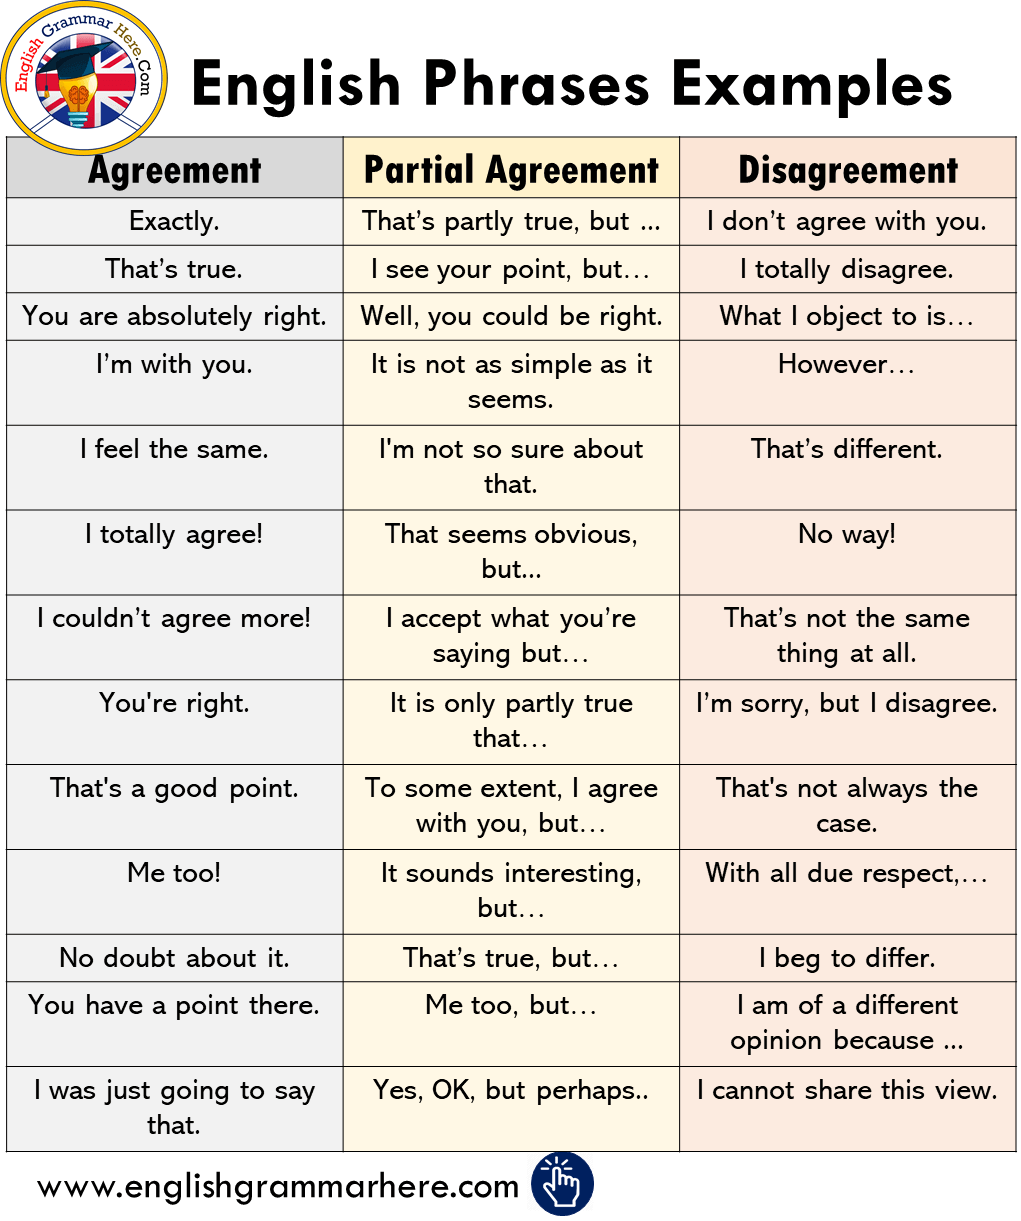 Agreement, Disagreement and Partial Agreement Phrases Examples